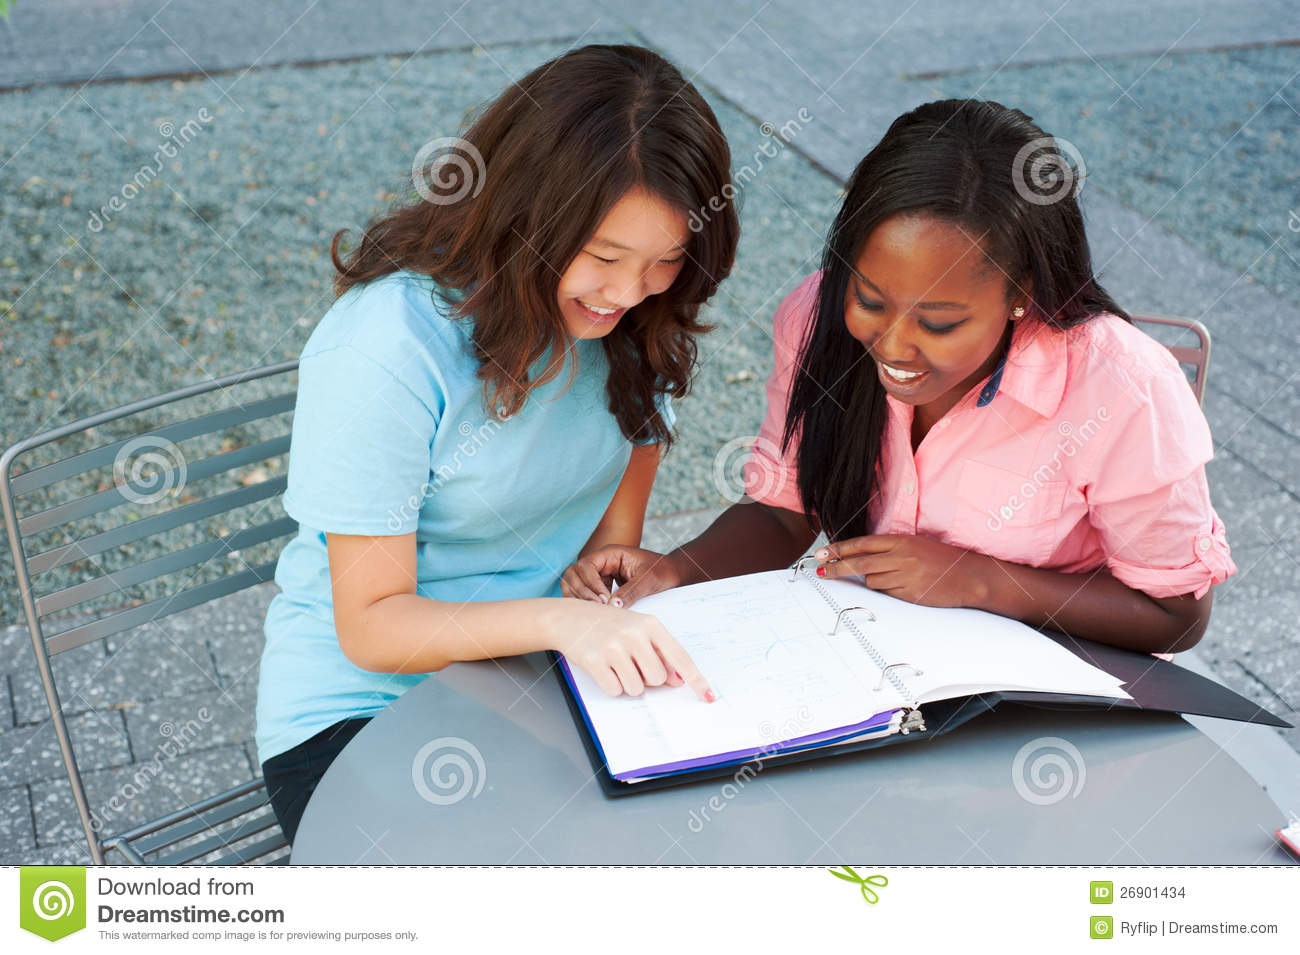 Two Friends Studying Together Stock Images - Image: 26901434